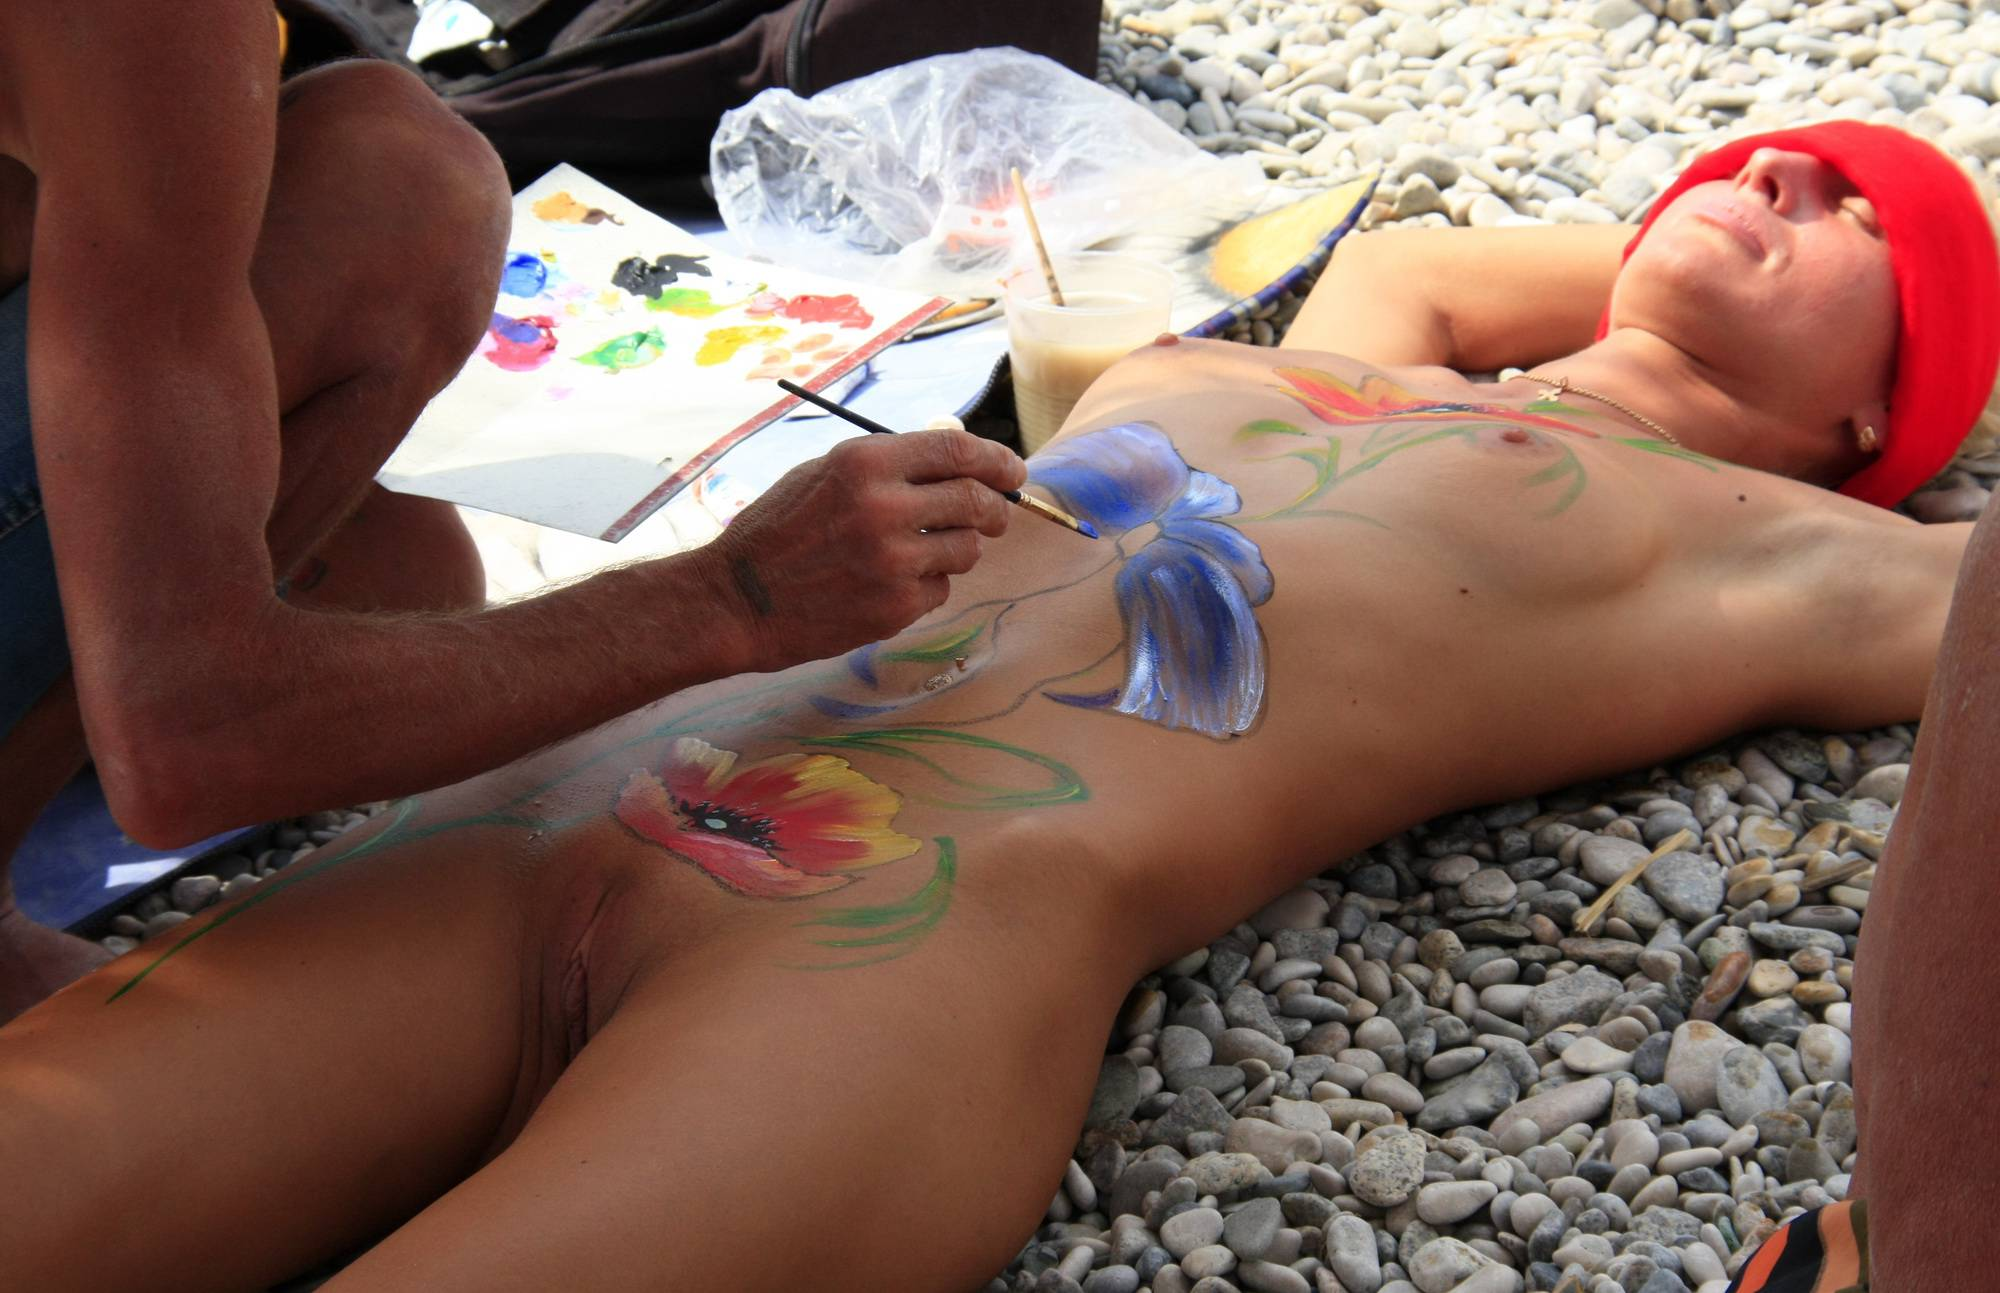 Nudist Pictures Beach Paints and Girl Rests - 1